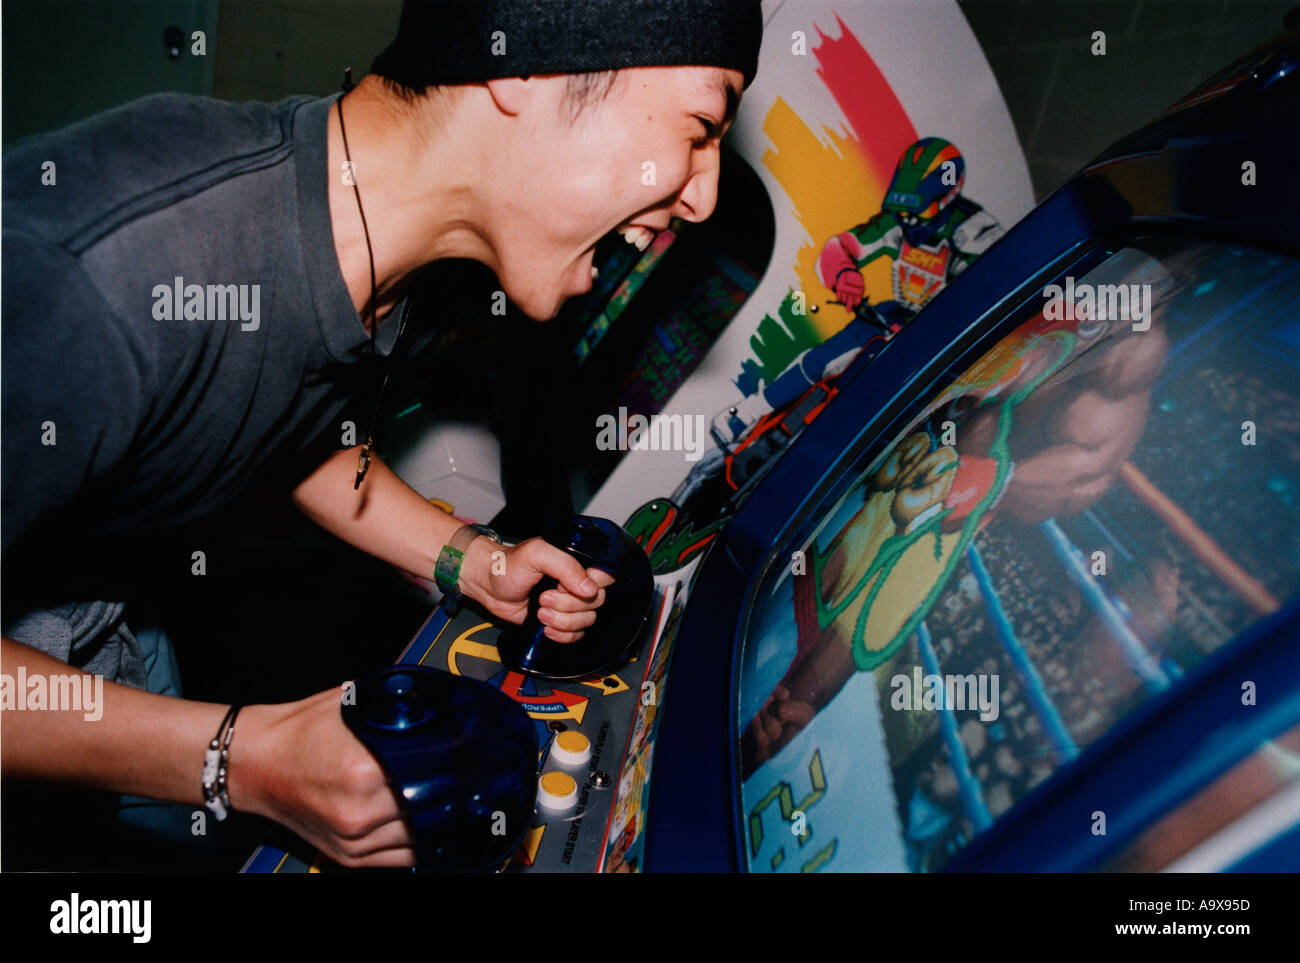 A male youth plays a boxing arcade game - Stock Image